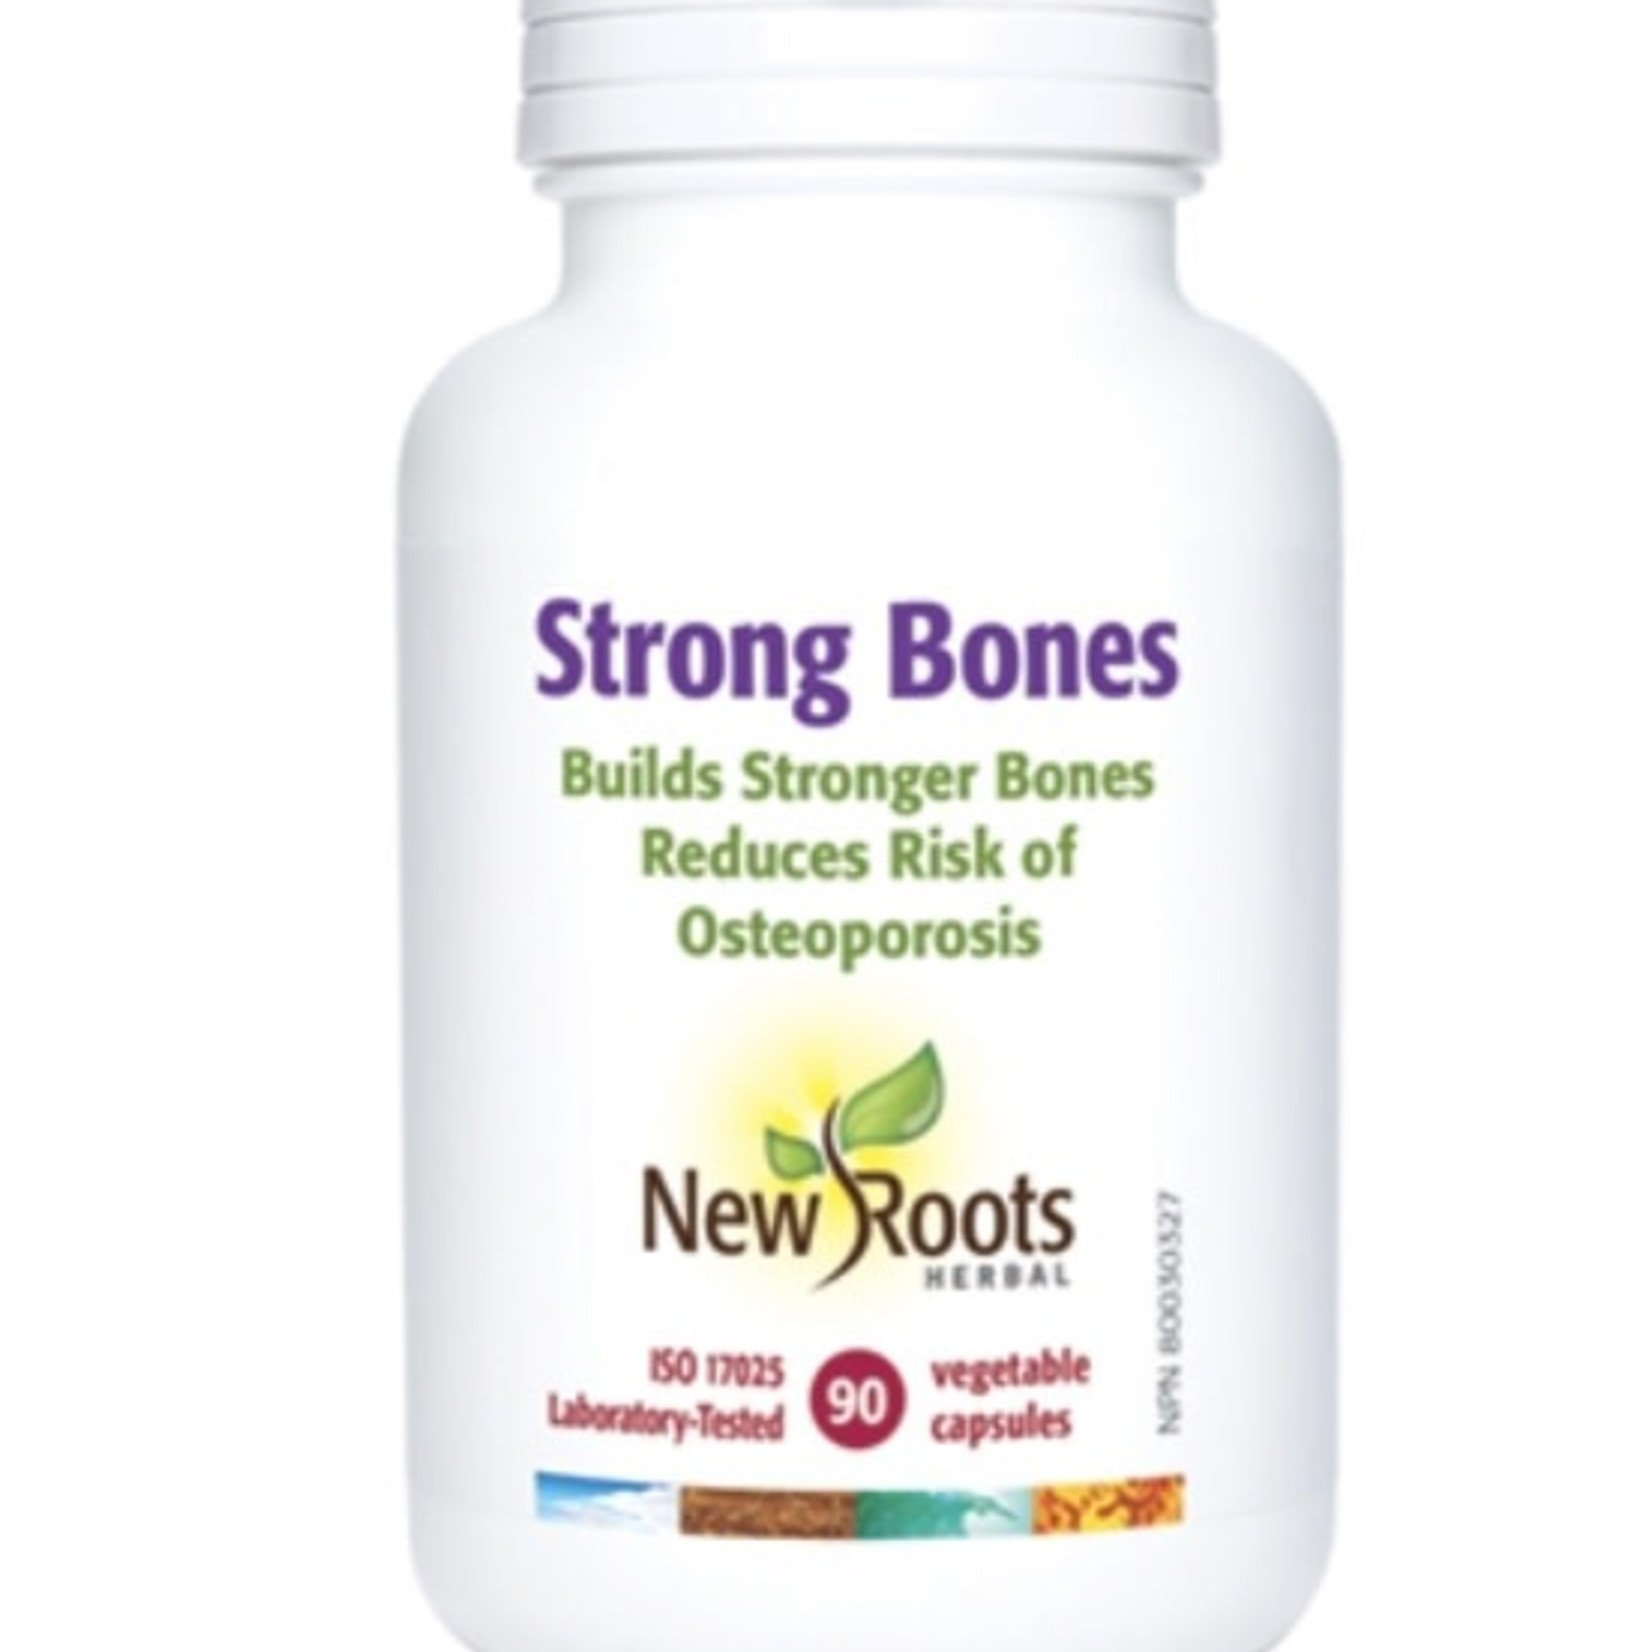 New Roots New Roots Strong Bones 90 capsules